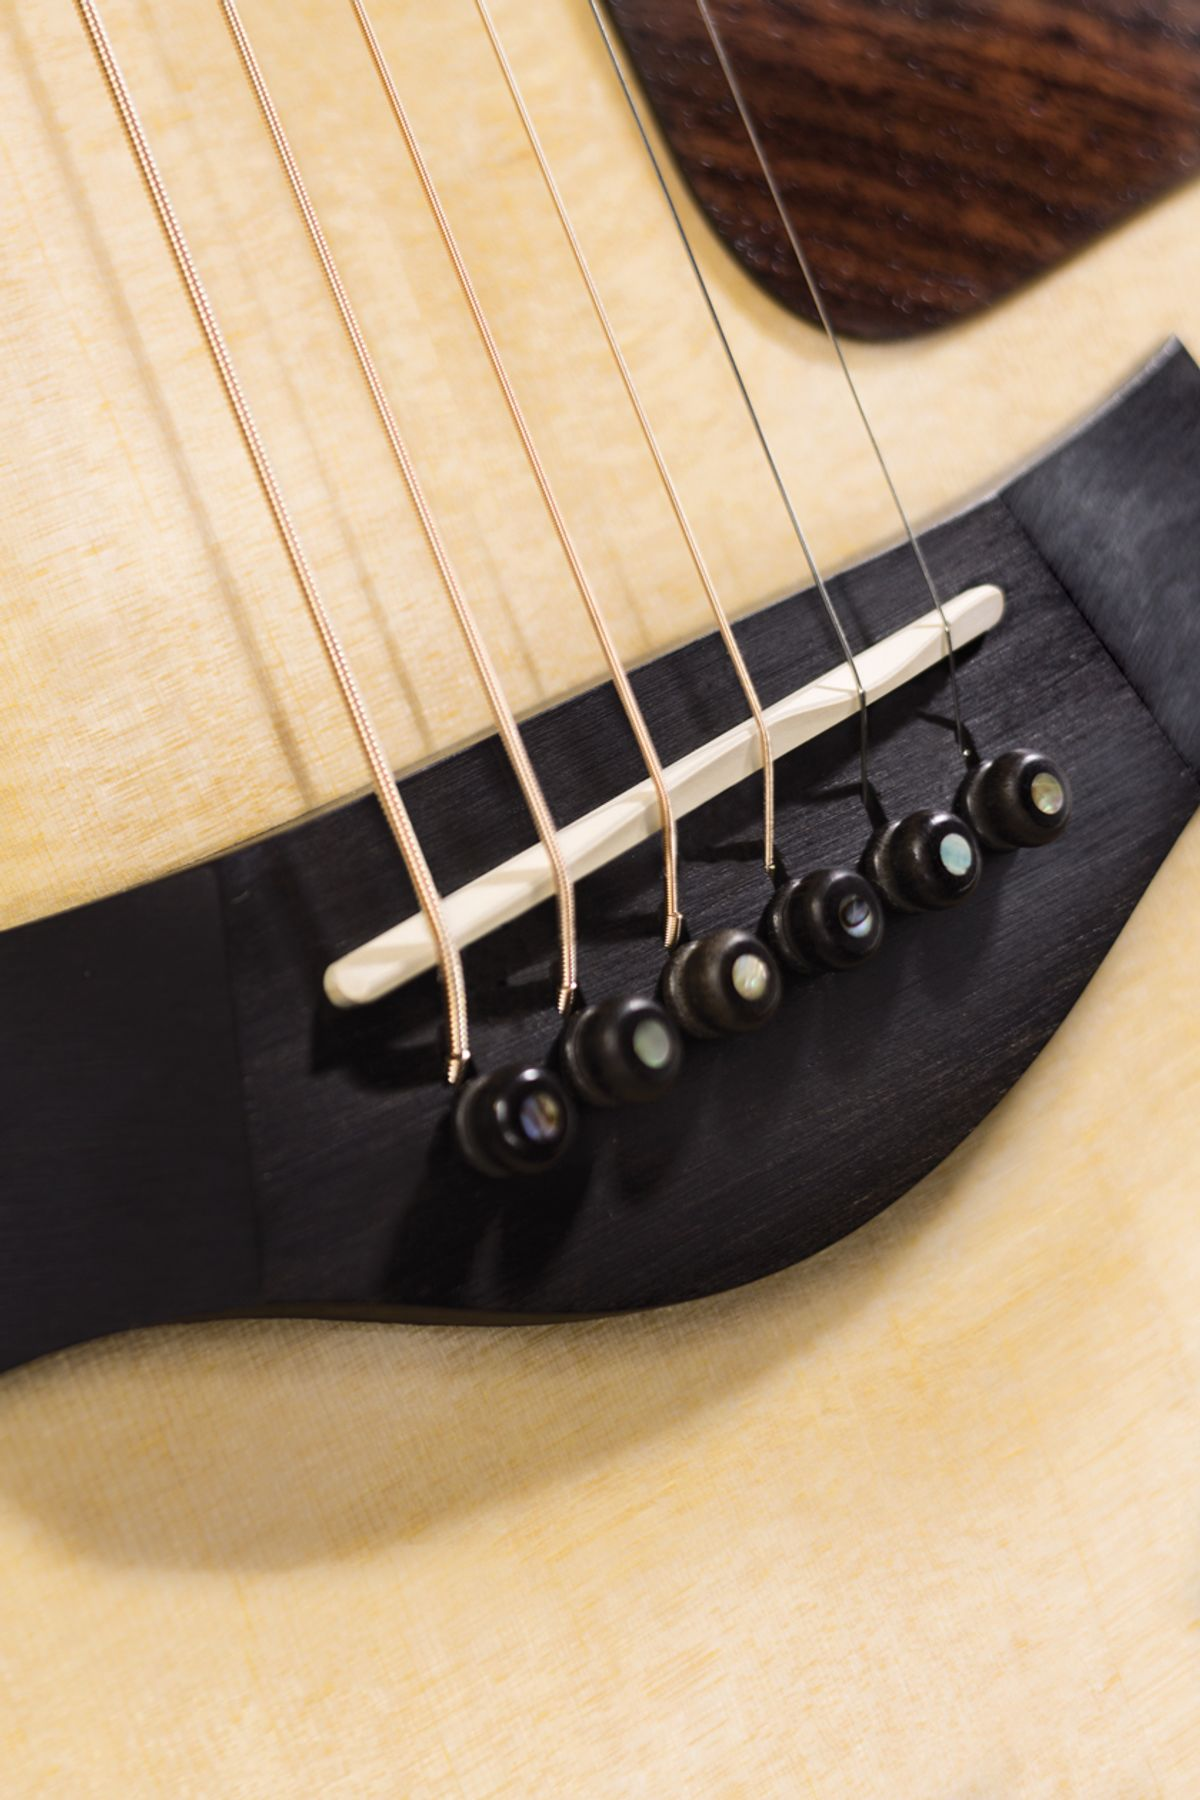 Acoustic Soundboard: High-Tension Wires